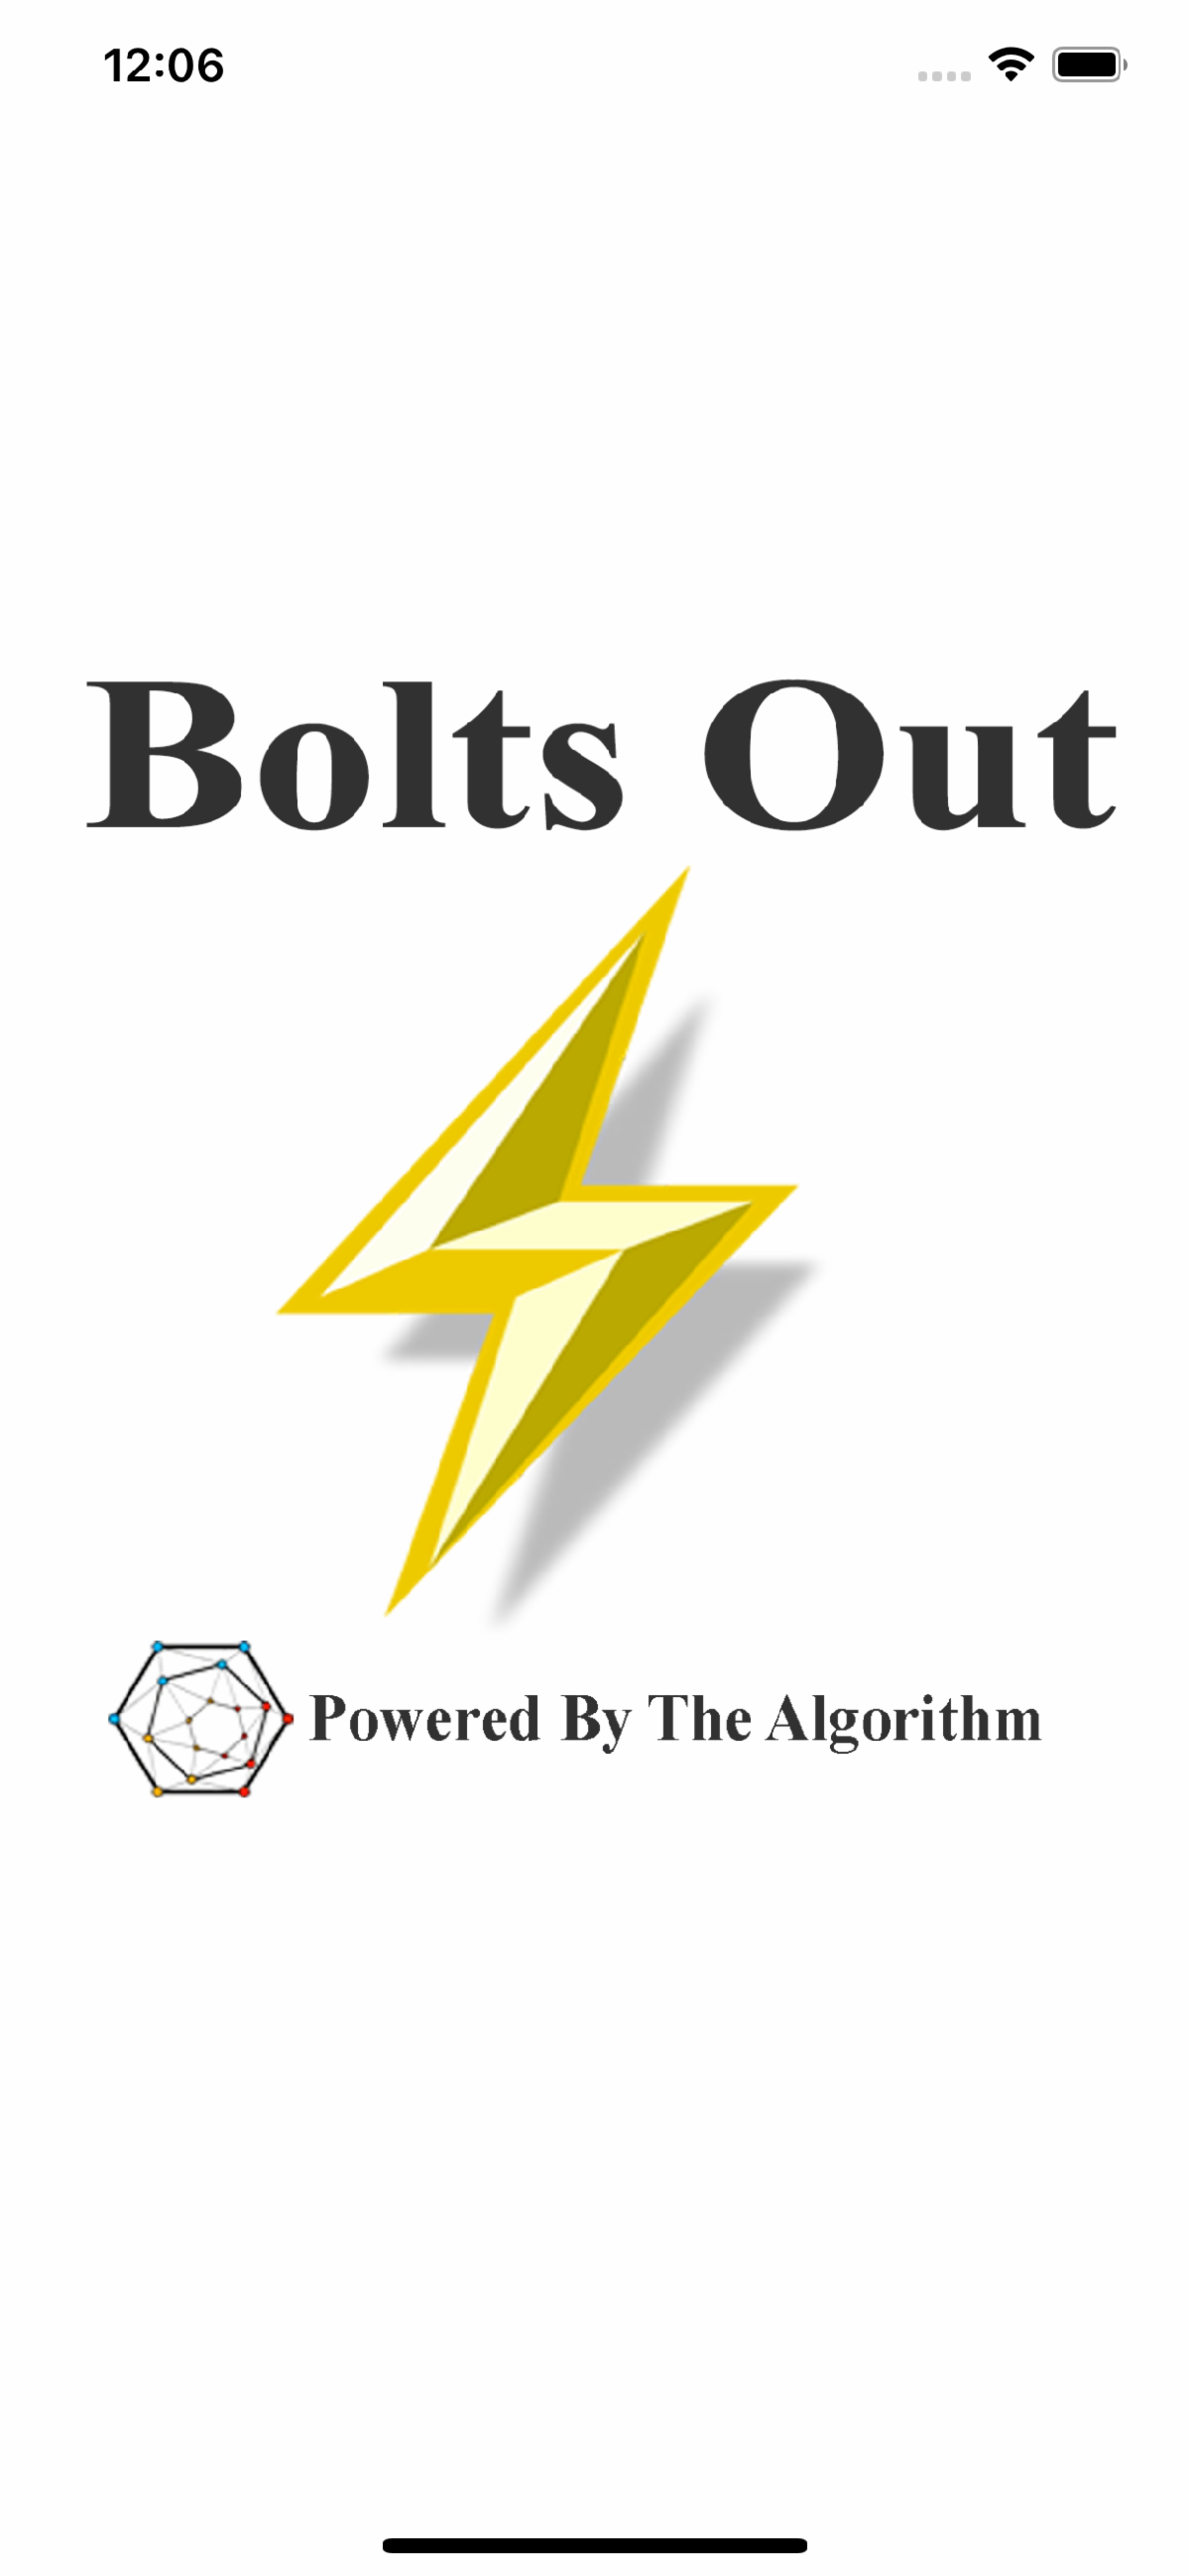 Bolts Out App